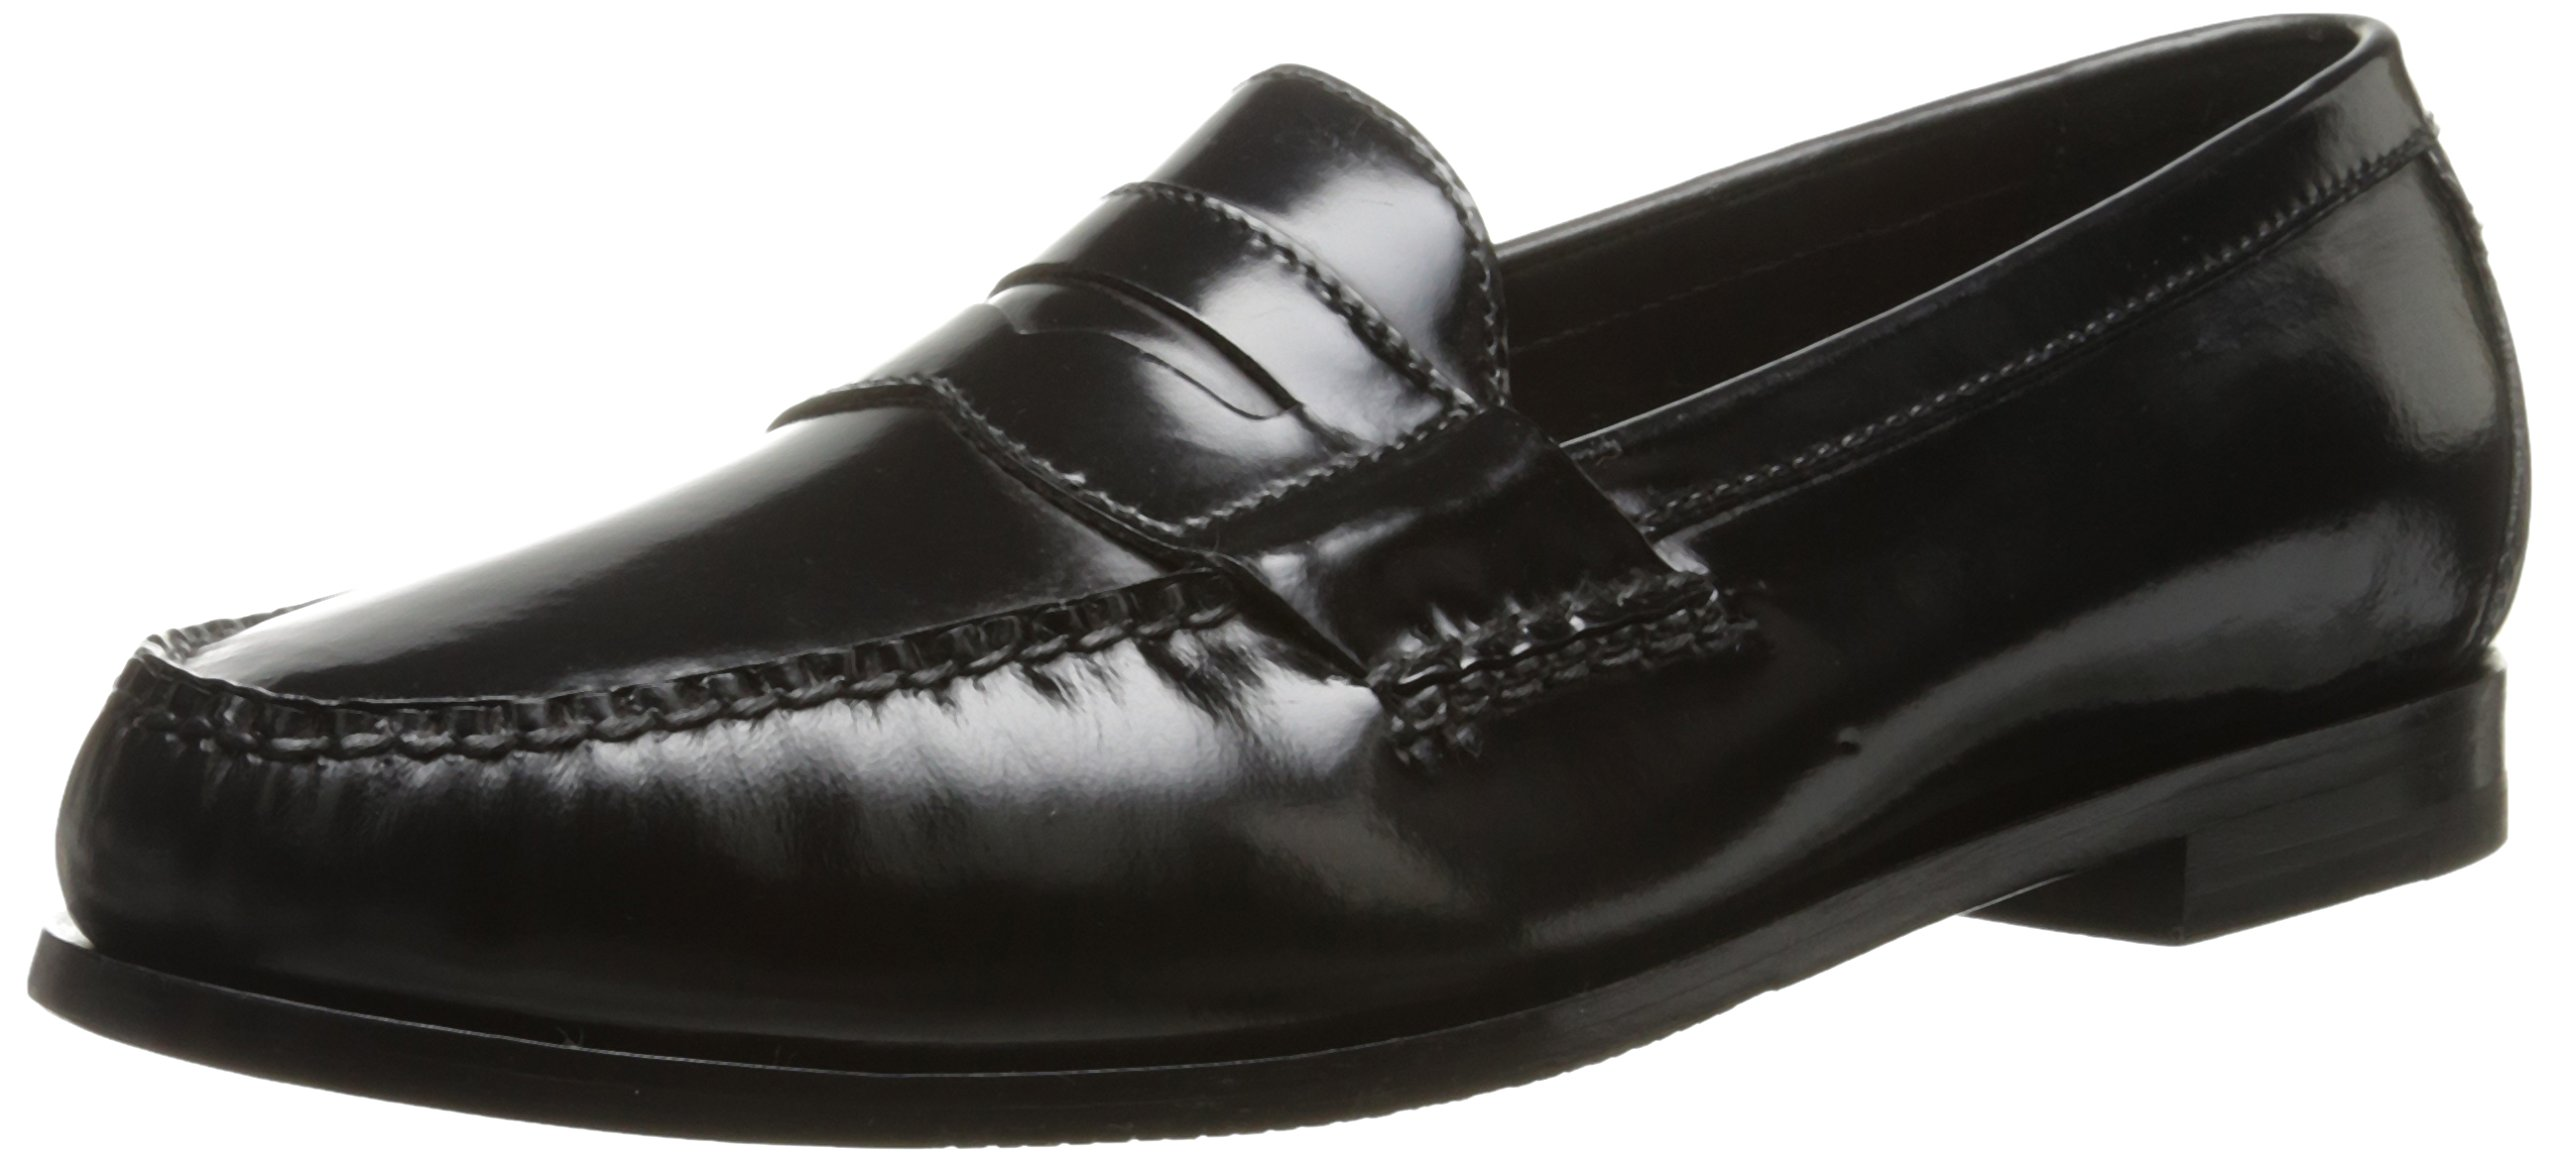 Cole Haan Men's Pinch Grand Penny Loafer, Black, 10 M US by Cole Haan